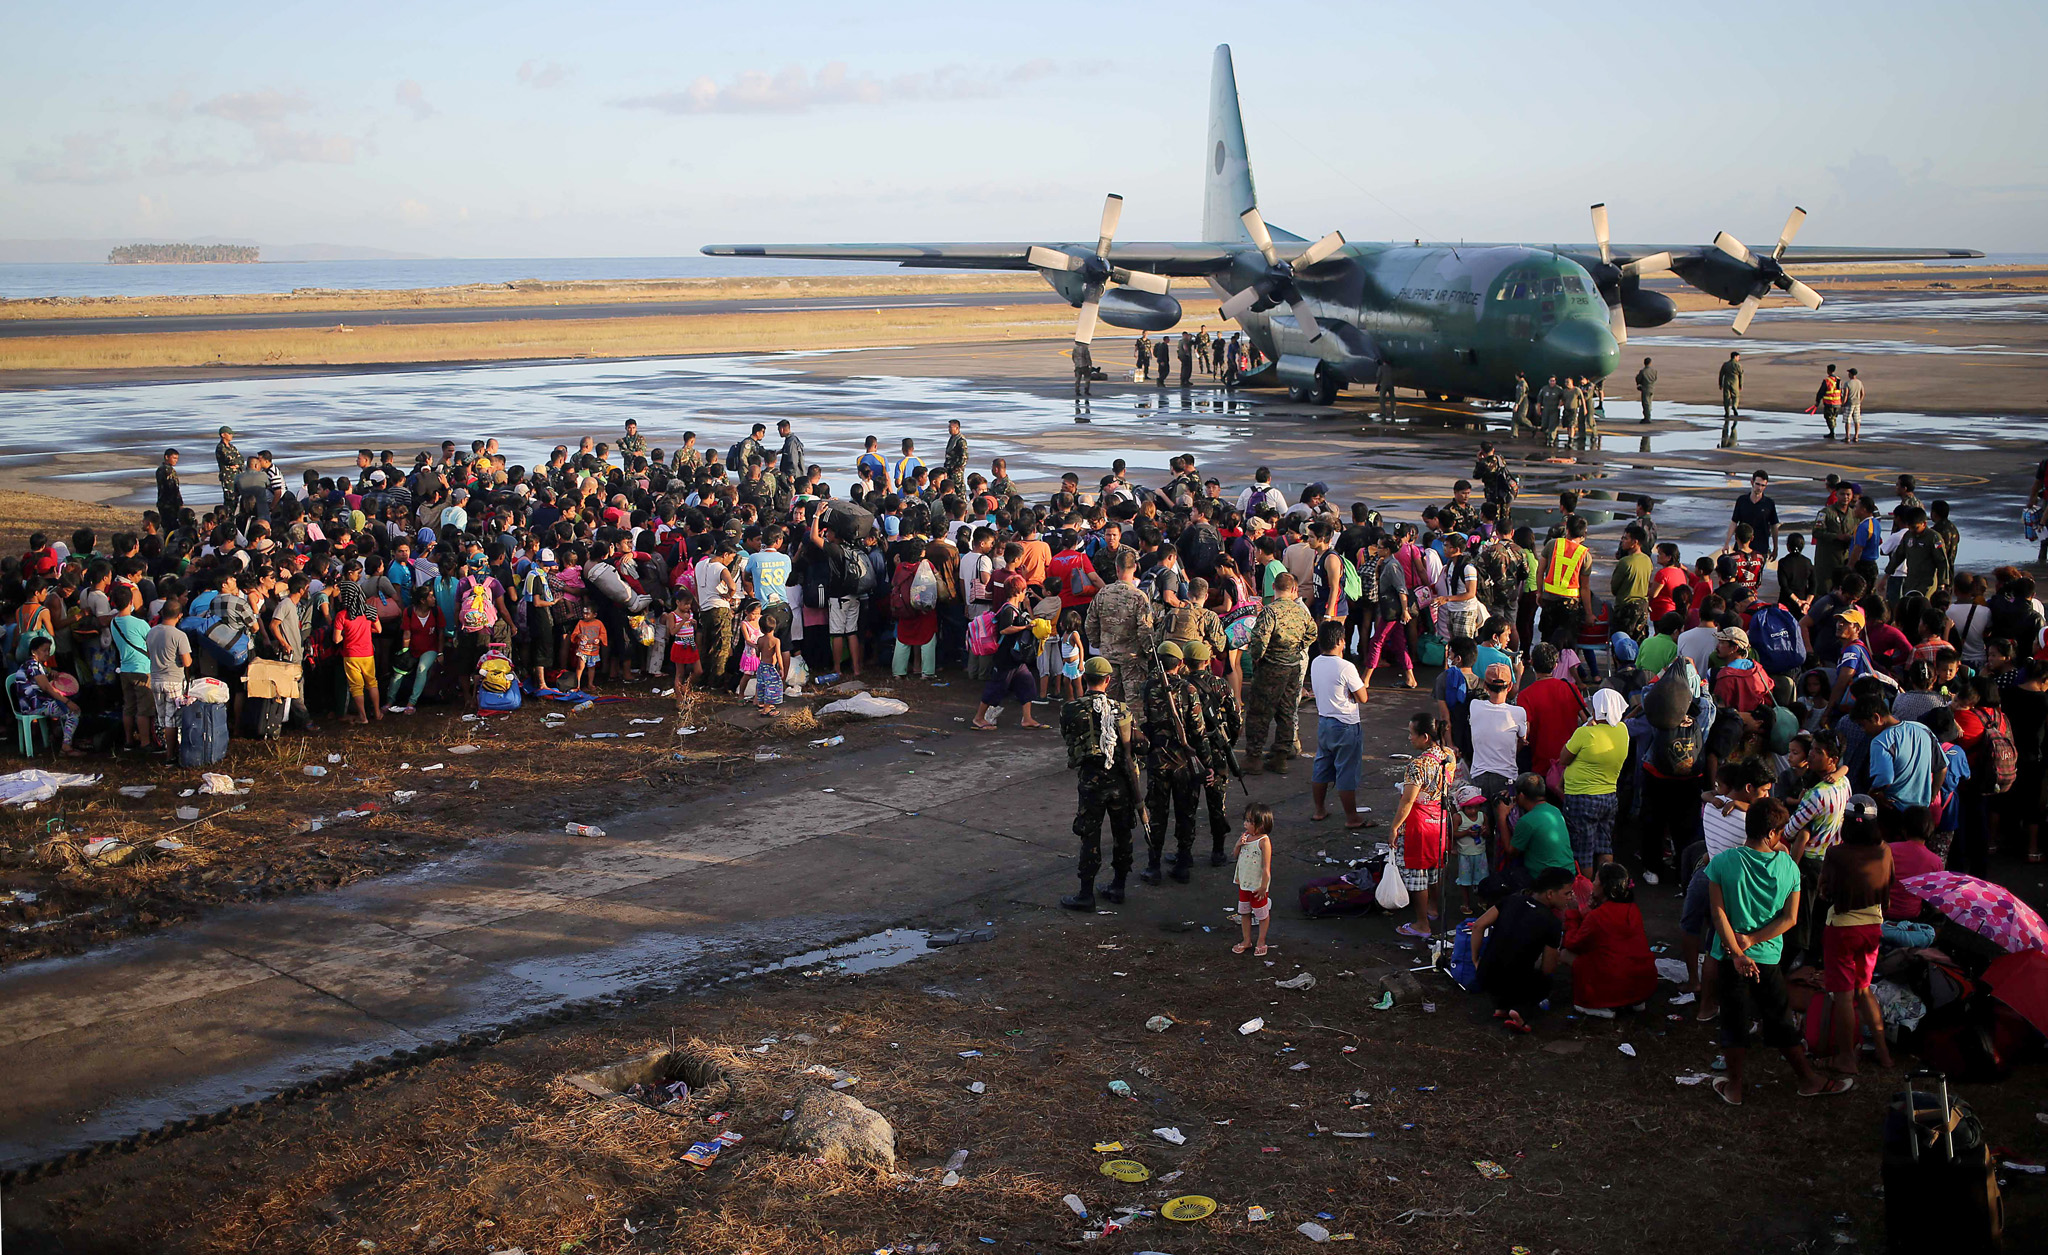 Survivors crowd around a Philippines Air force C-130 military aircraft, hoping to get on the next flight, Thursday, Nov. 14, 2013 in Tacloban city, Leyte province, central Philippines. Typhoon Haiyan, one of the strongest storms on record, slammed into 6 central Philippine islands on Friday leaving a wide swath of destruction and thousands of people dead.(AP Photo/Wong Maye-E)